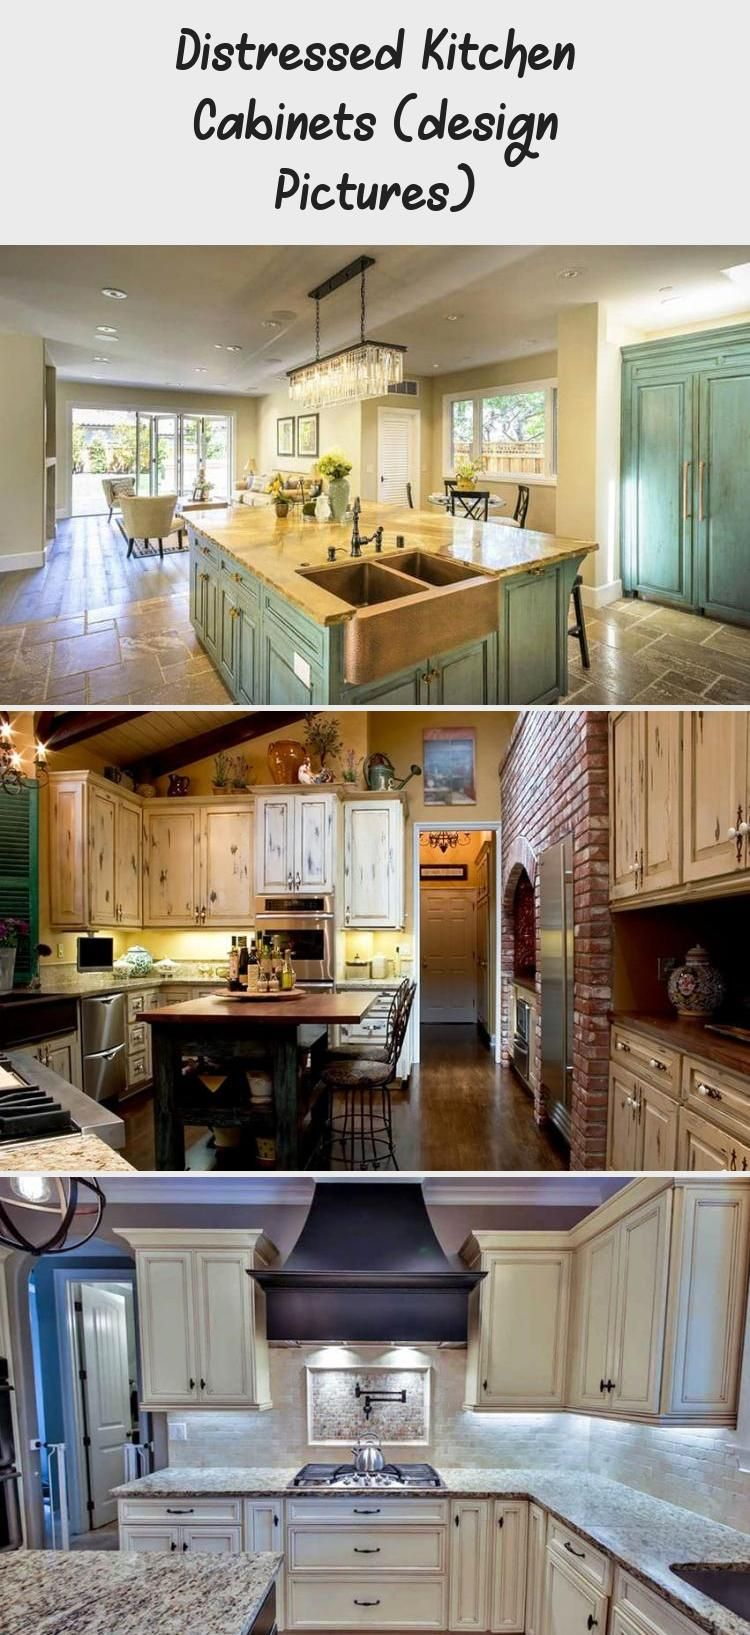 Distressed Kitchen Cabinets (design Pictures | Distressed ...